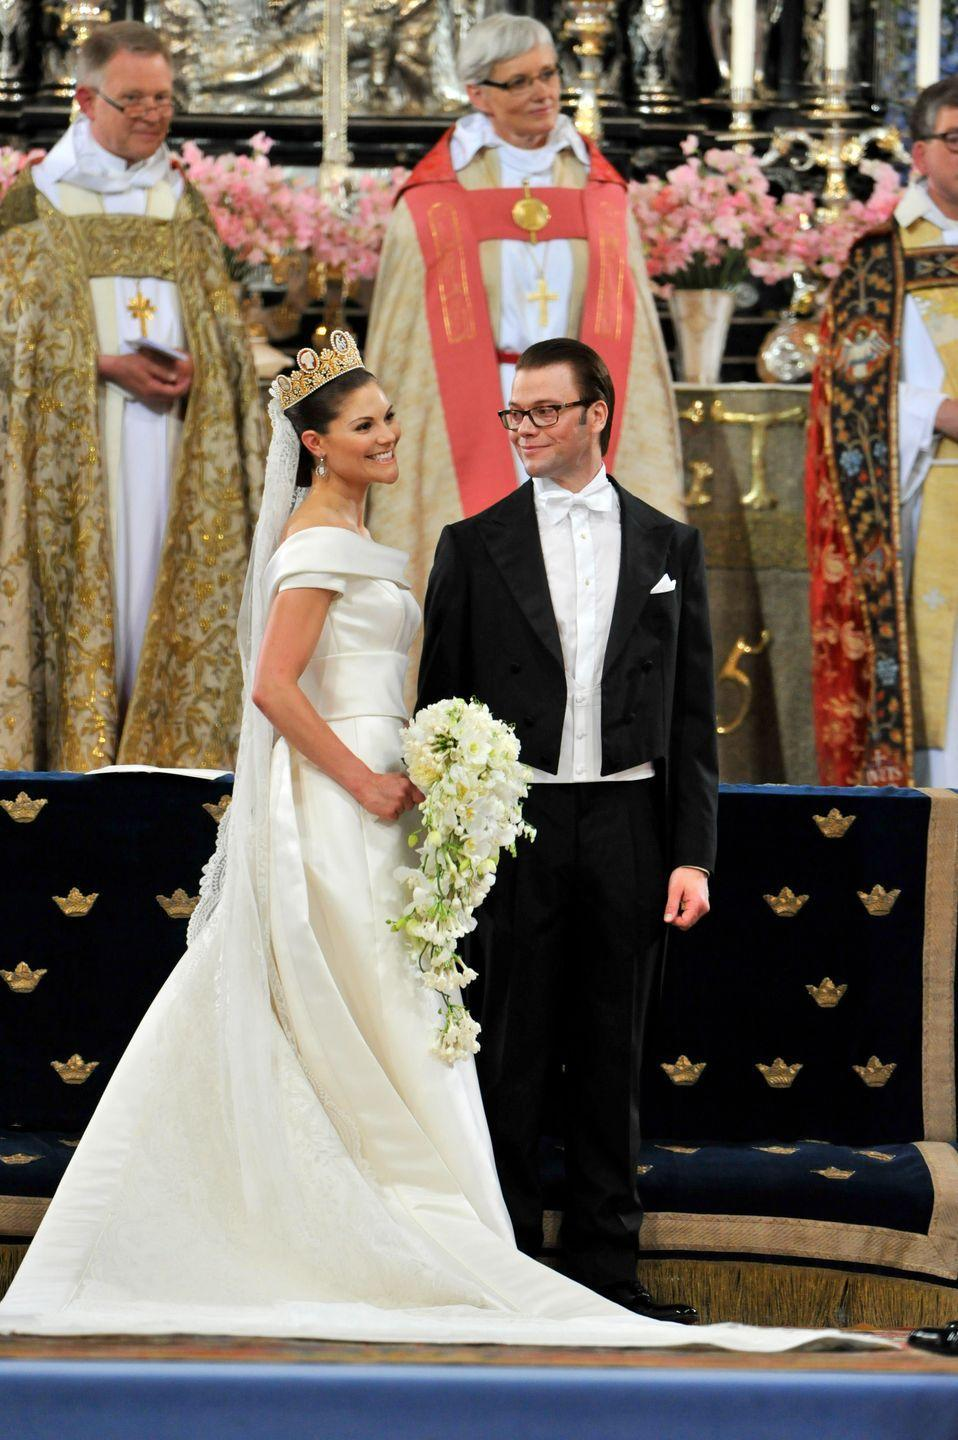 <p>Married on June 19, 2010, Princess Victoria and Prince Daniel of Sweden had their wedding at Storkyrkan church in Stockhold, Sweden. Princess Victoria's wedding dress was made of cream duchess silk satin with a detachable 16-foot train, a rounded collar, and minimal embellishments.</p>